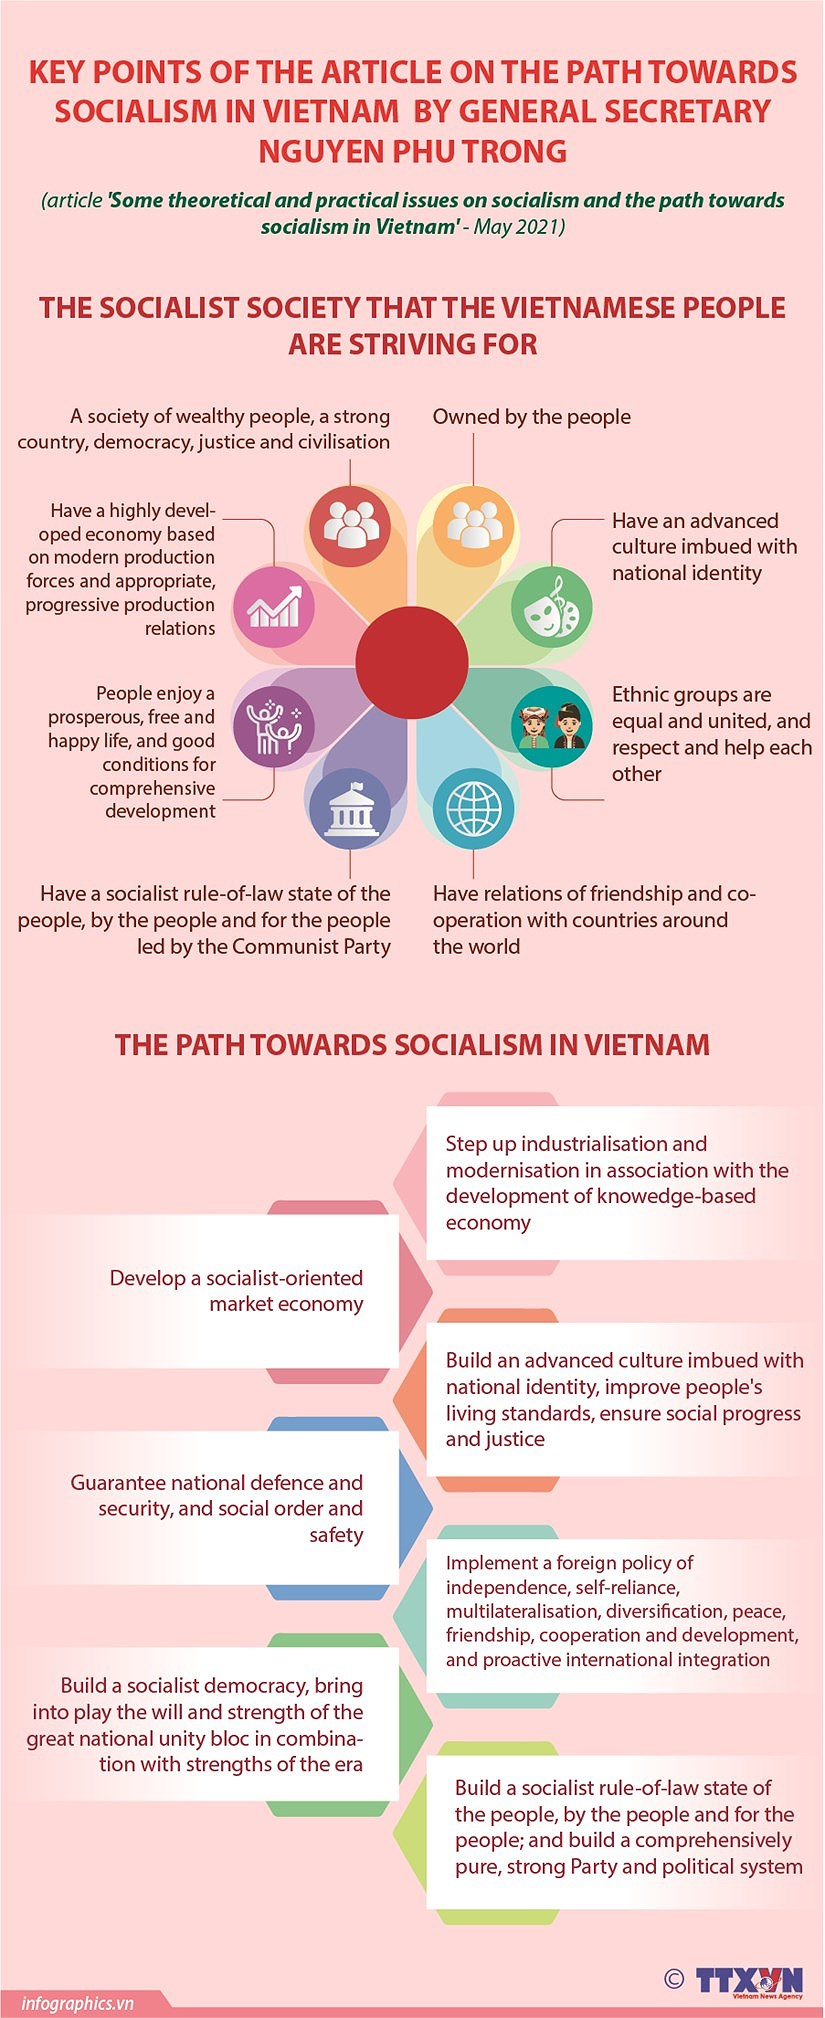 Some theoretical and practical issues on socialism and the path towards socialism in Vietnam hinh anh 4